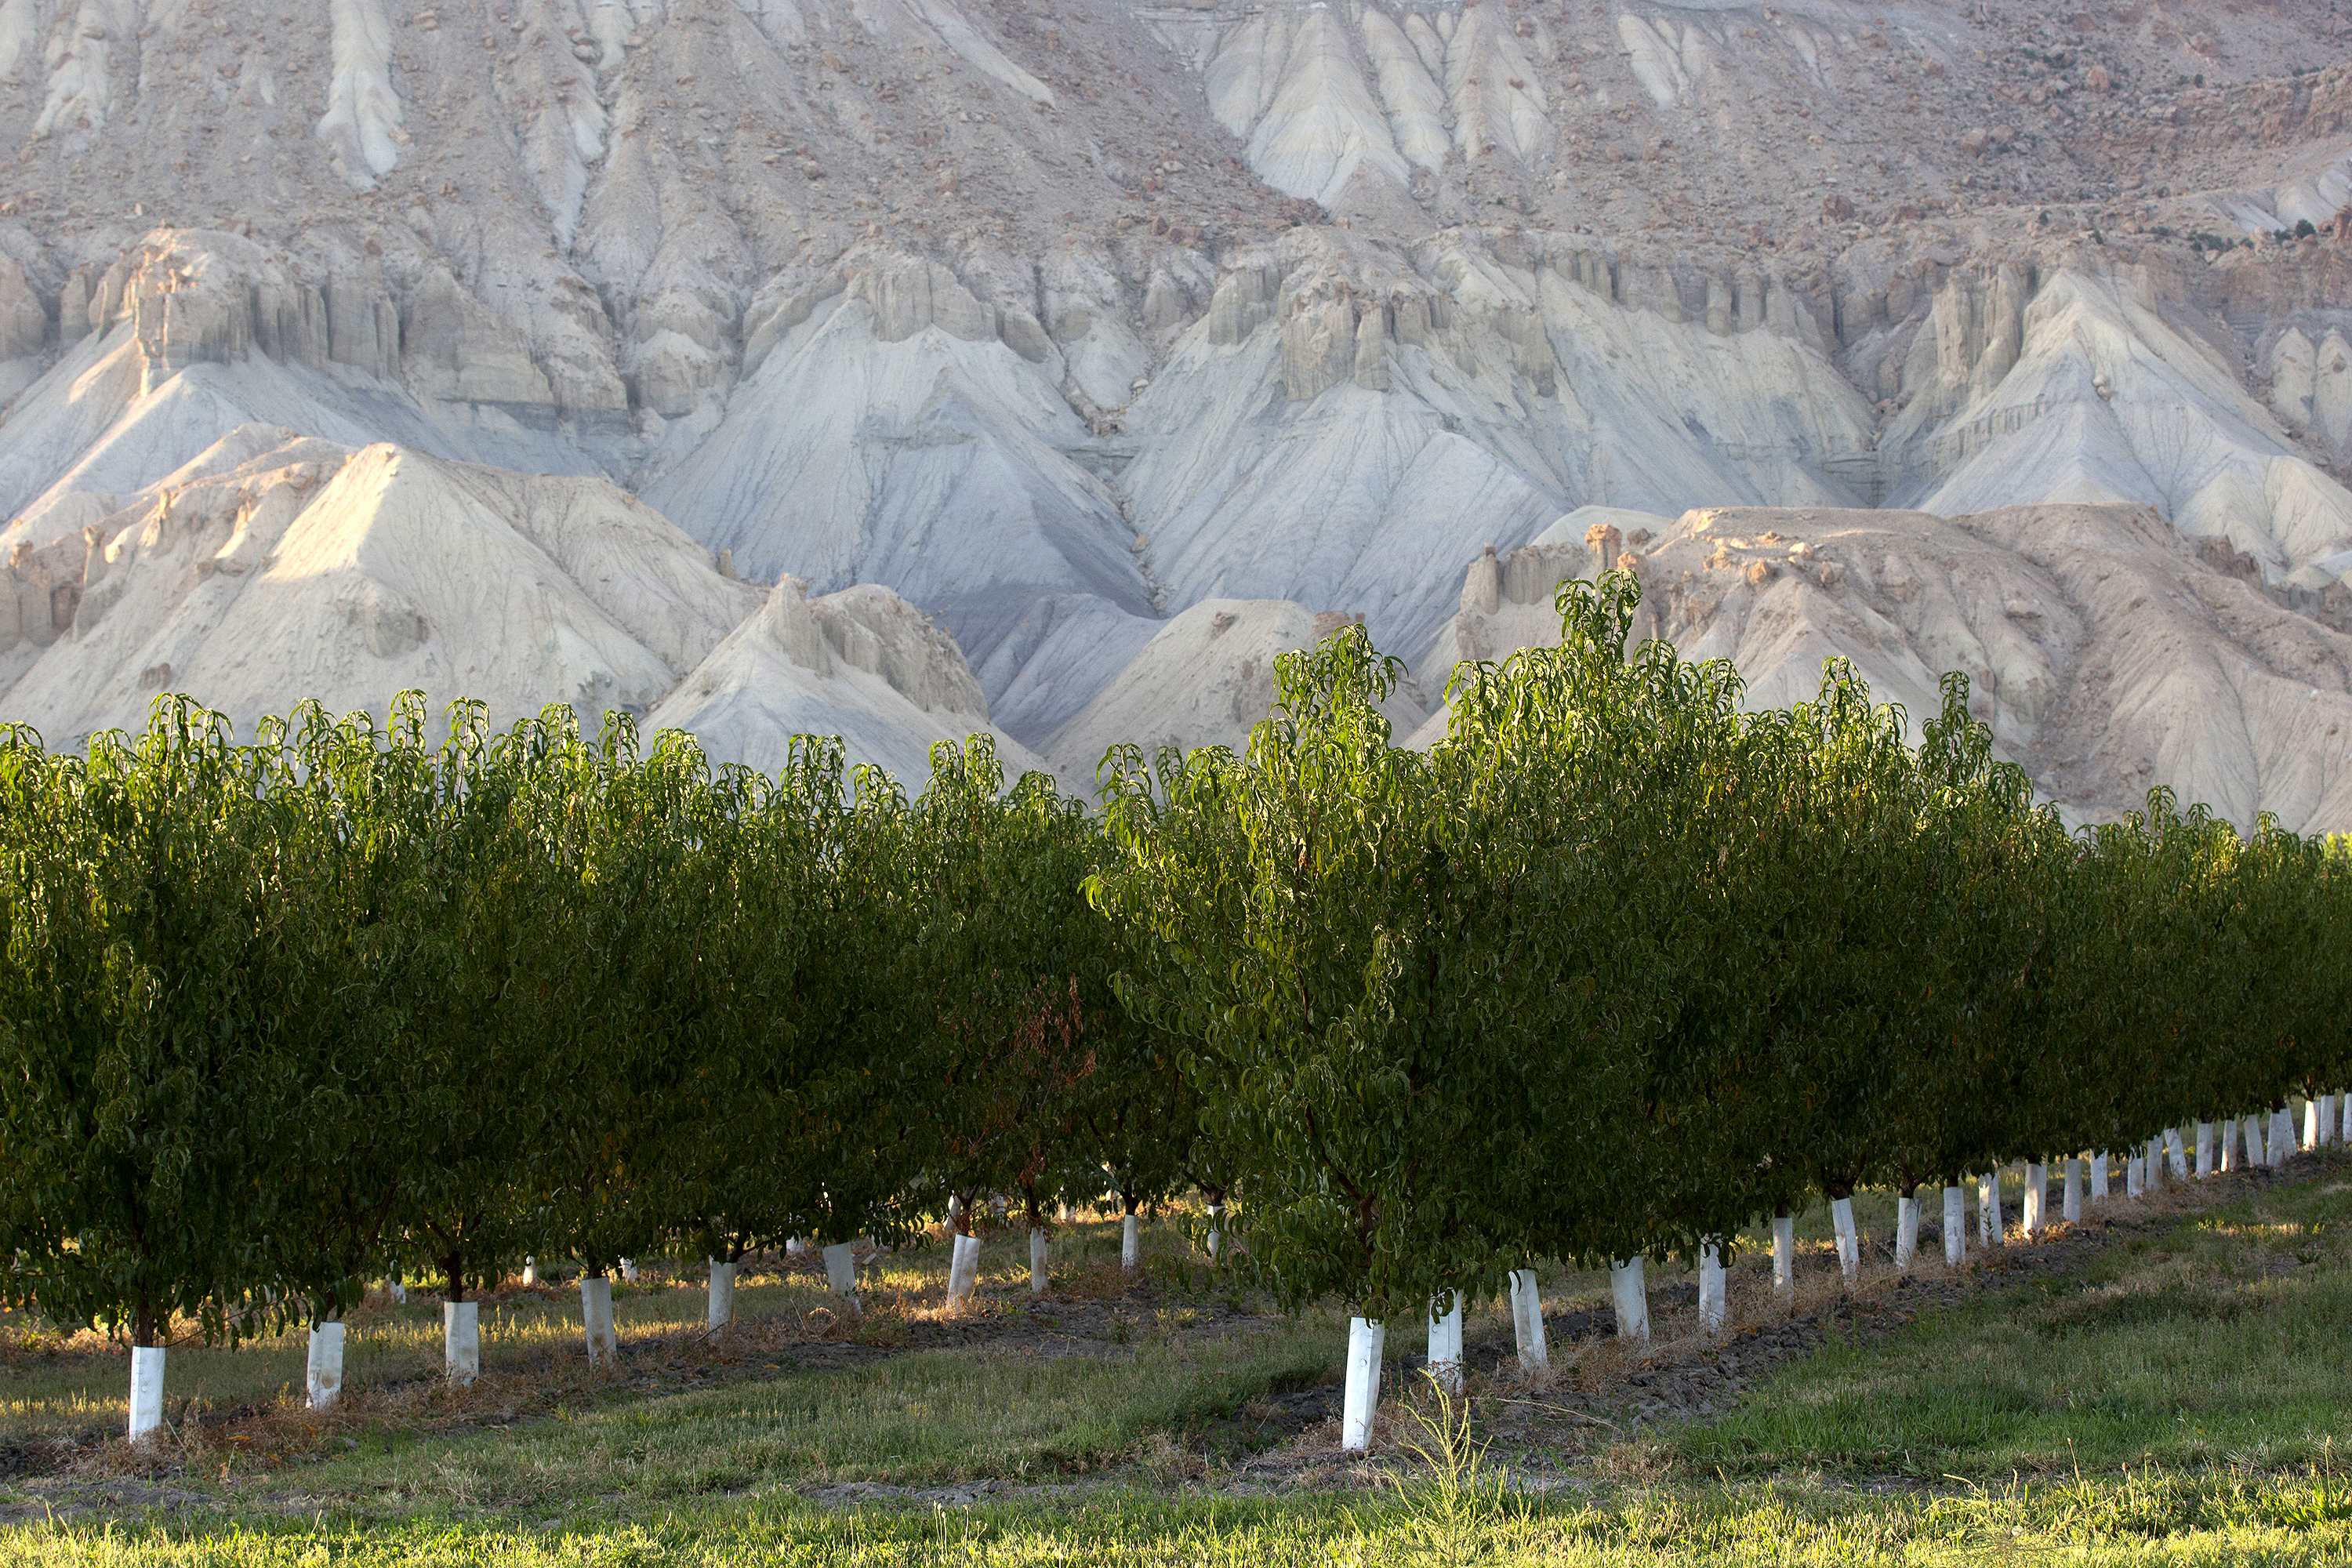 The Book Cliffs rise behind orchards in Palisade.